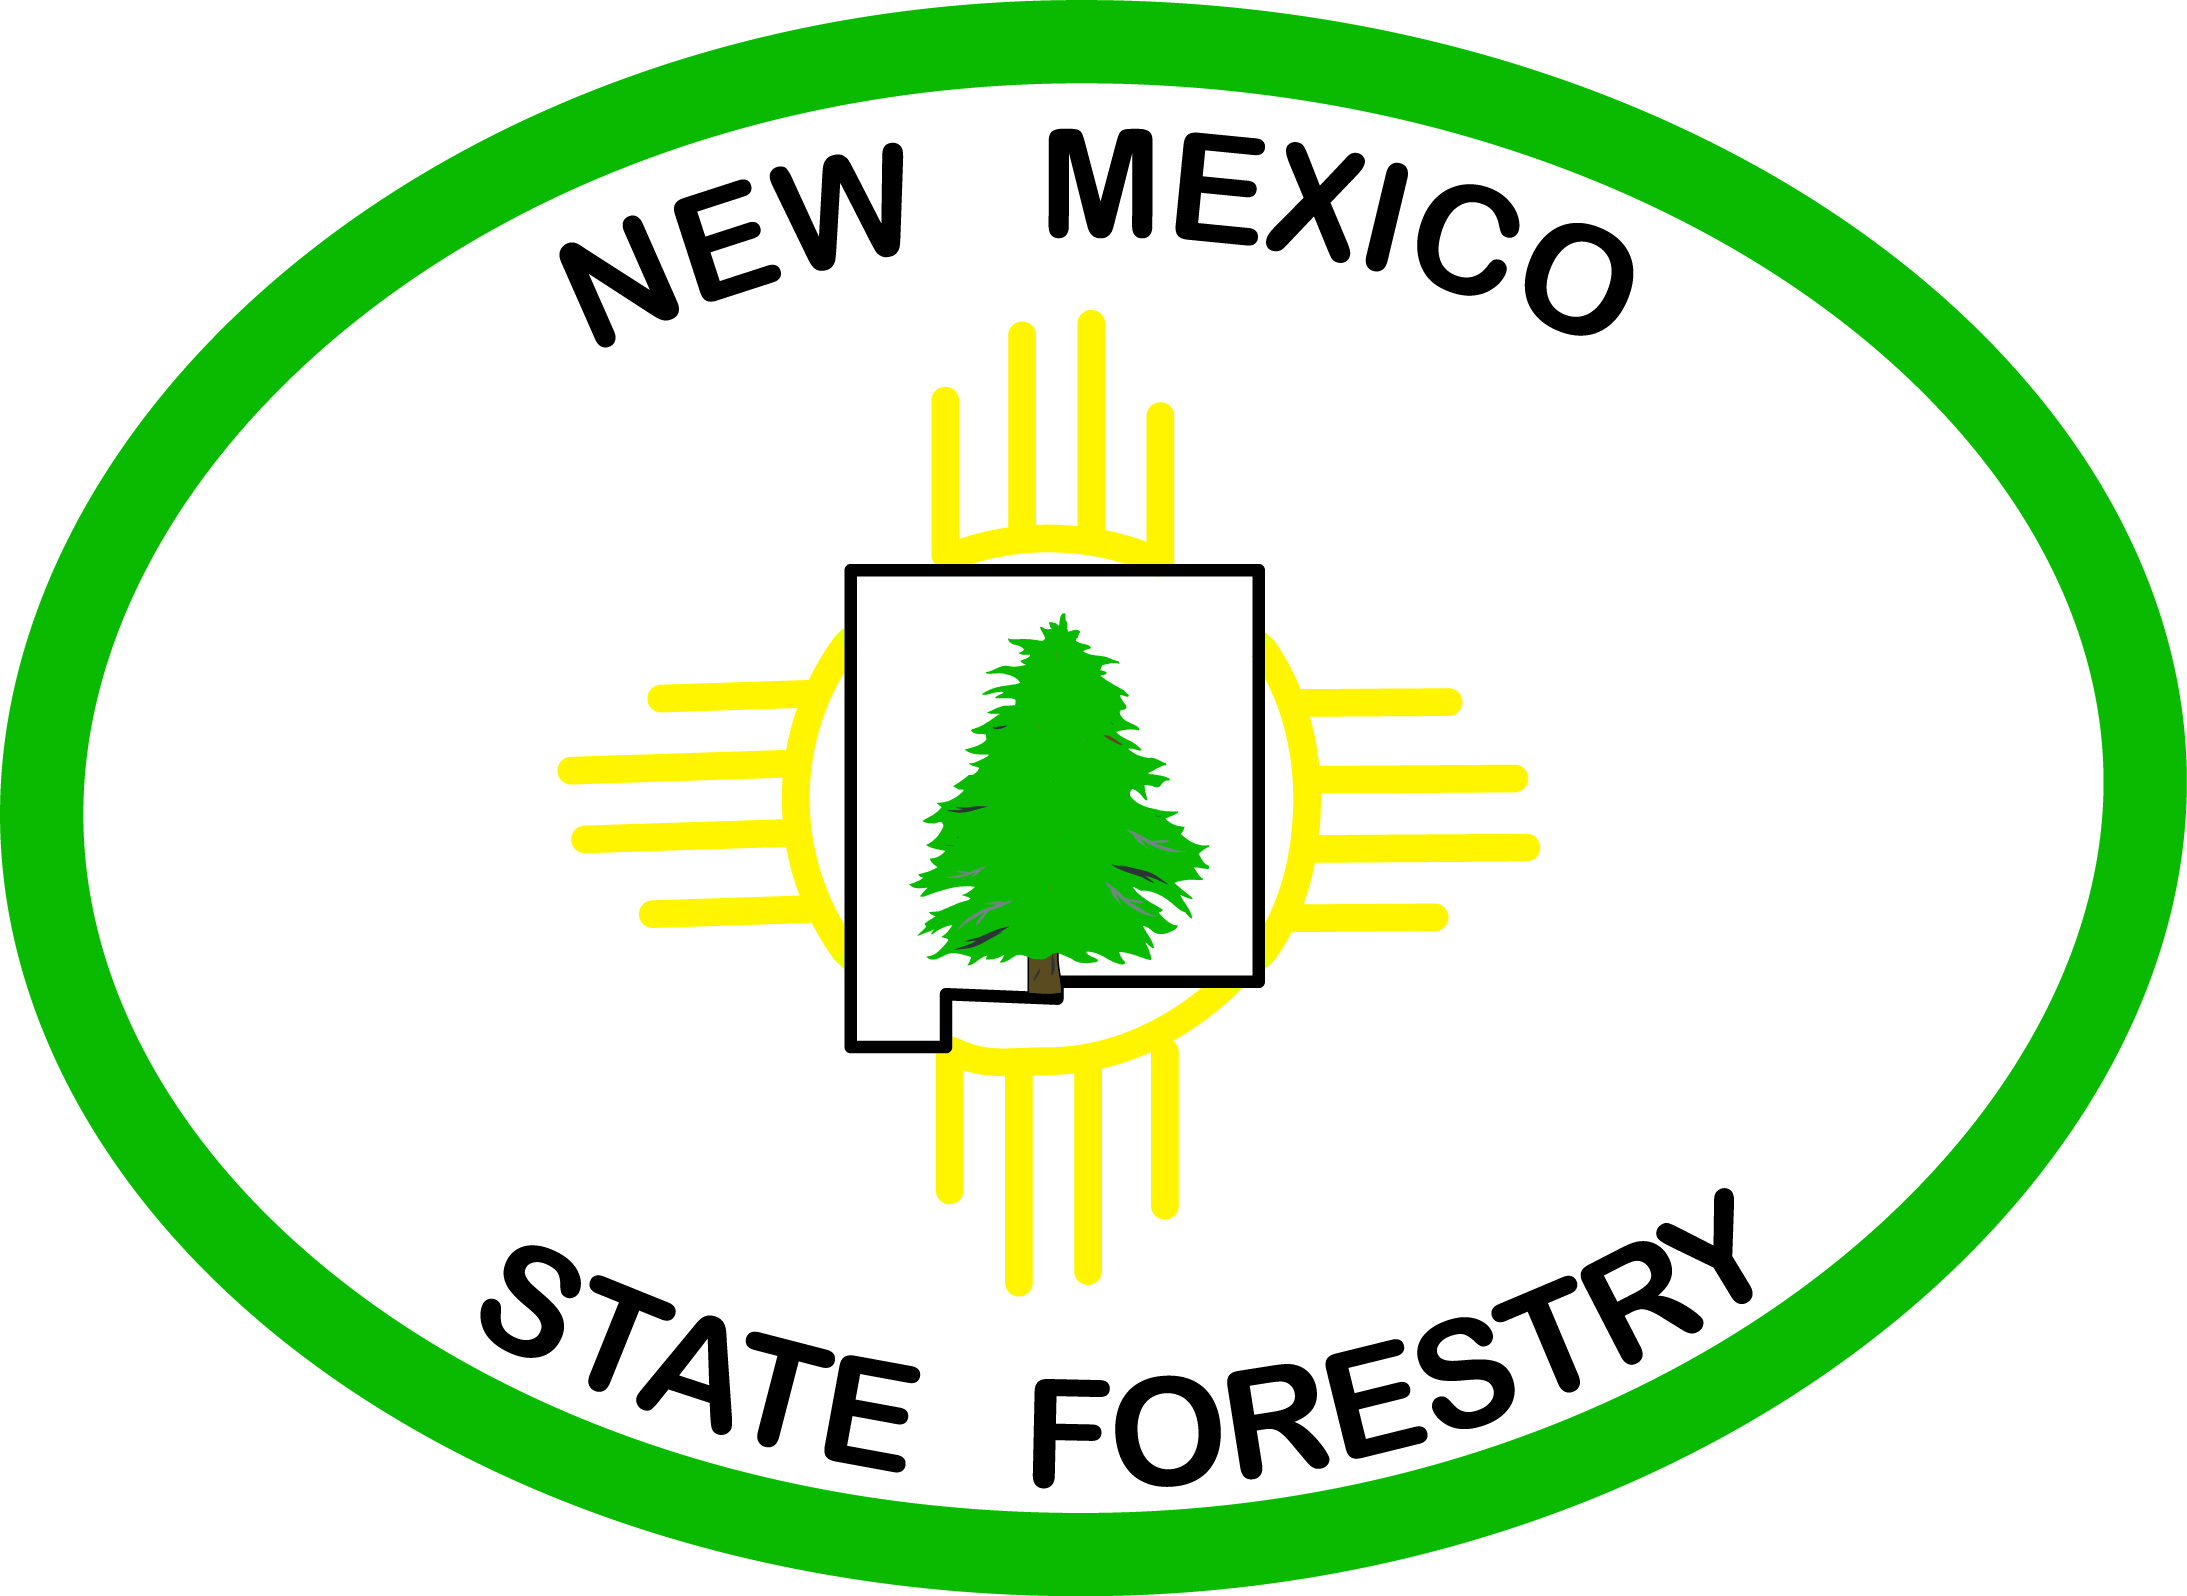 New Mexico State Forestry Division, Energy Minerals and Natural Resources Department